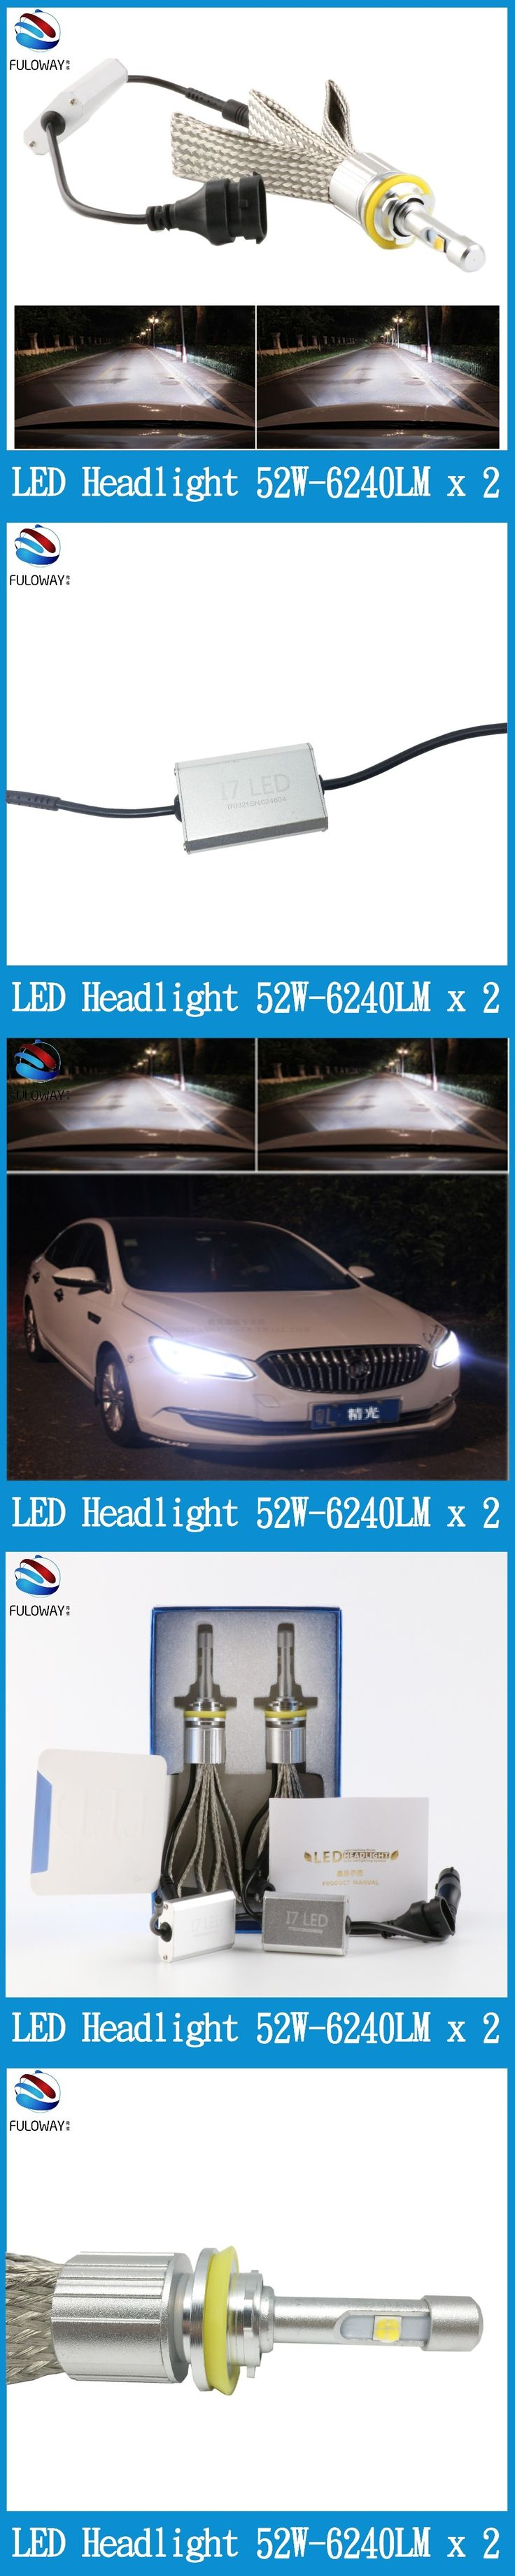 96 best car lights images on pinterest autos blue and blue colors fuloway super bright car led headlights h11h9h8h7h4 nvjuhfo Gallery